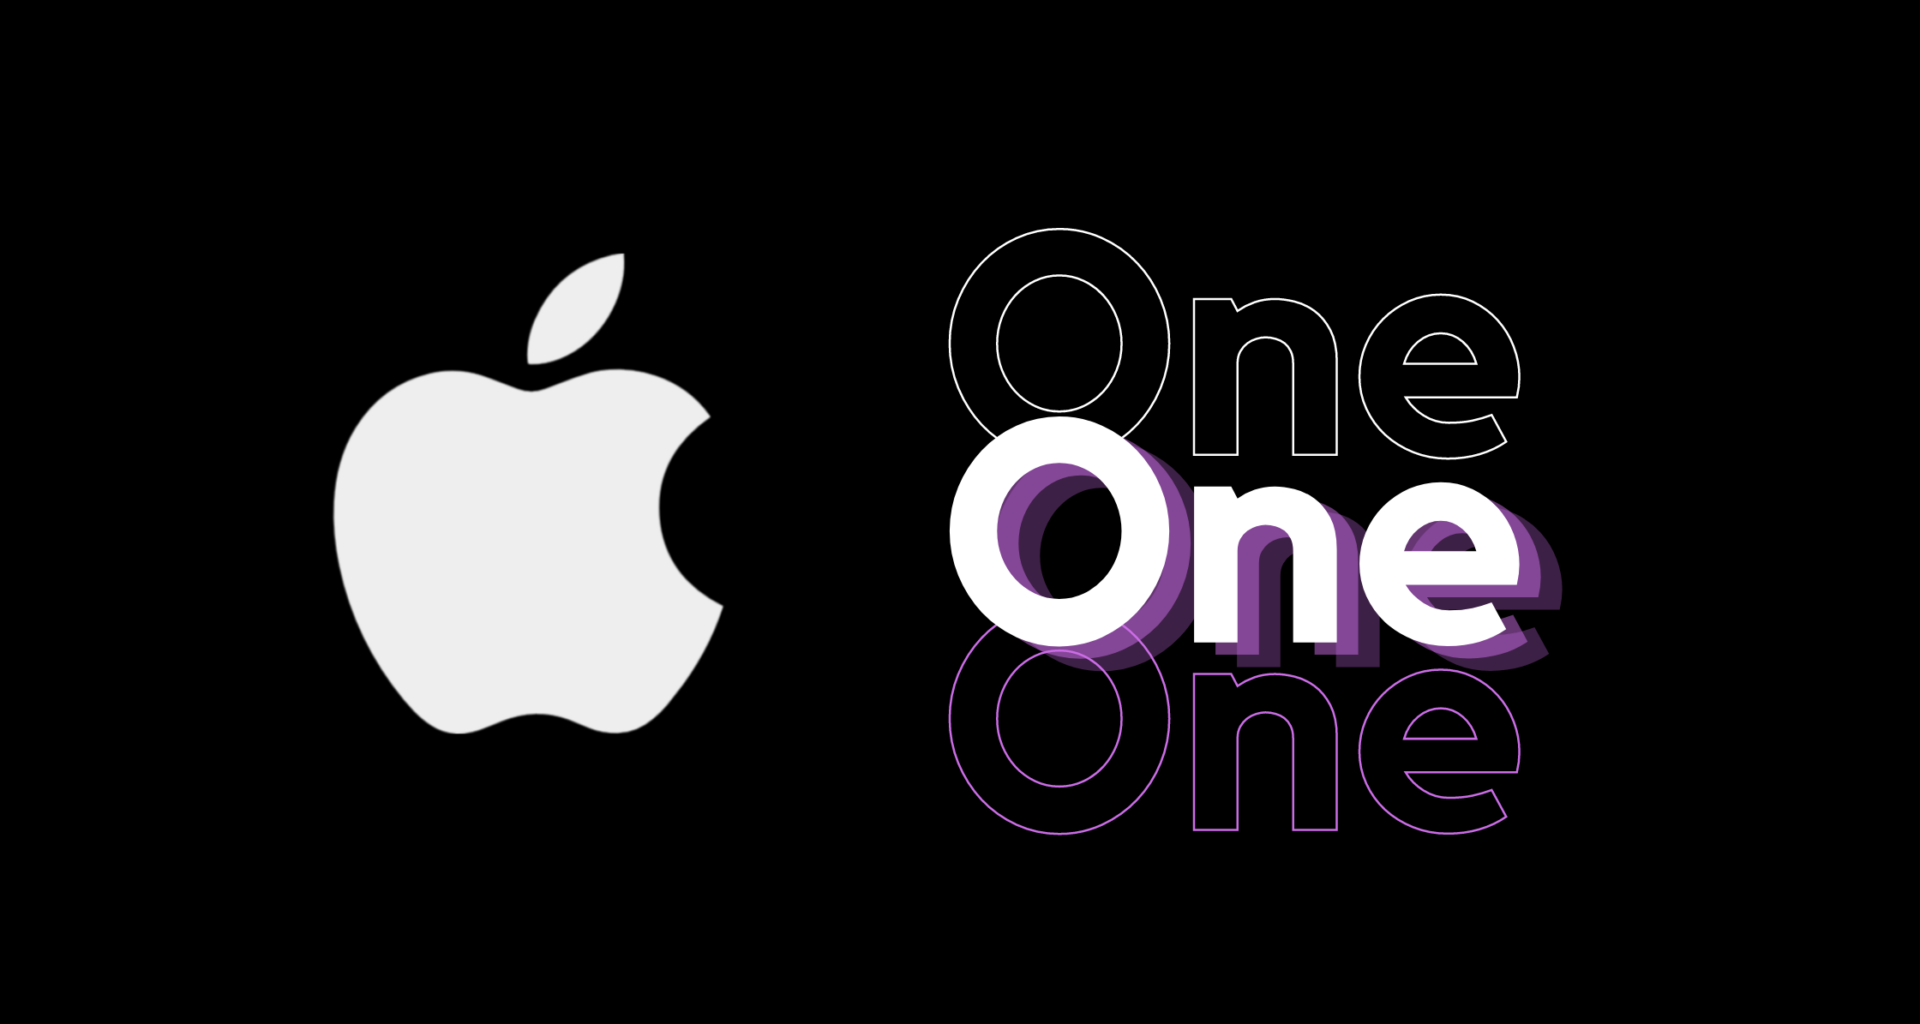 Apple One: Apple Music's Android app confirms new subscription